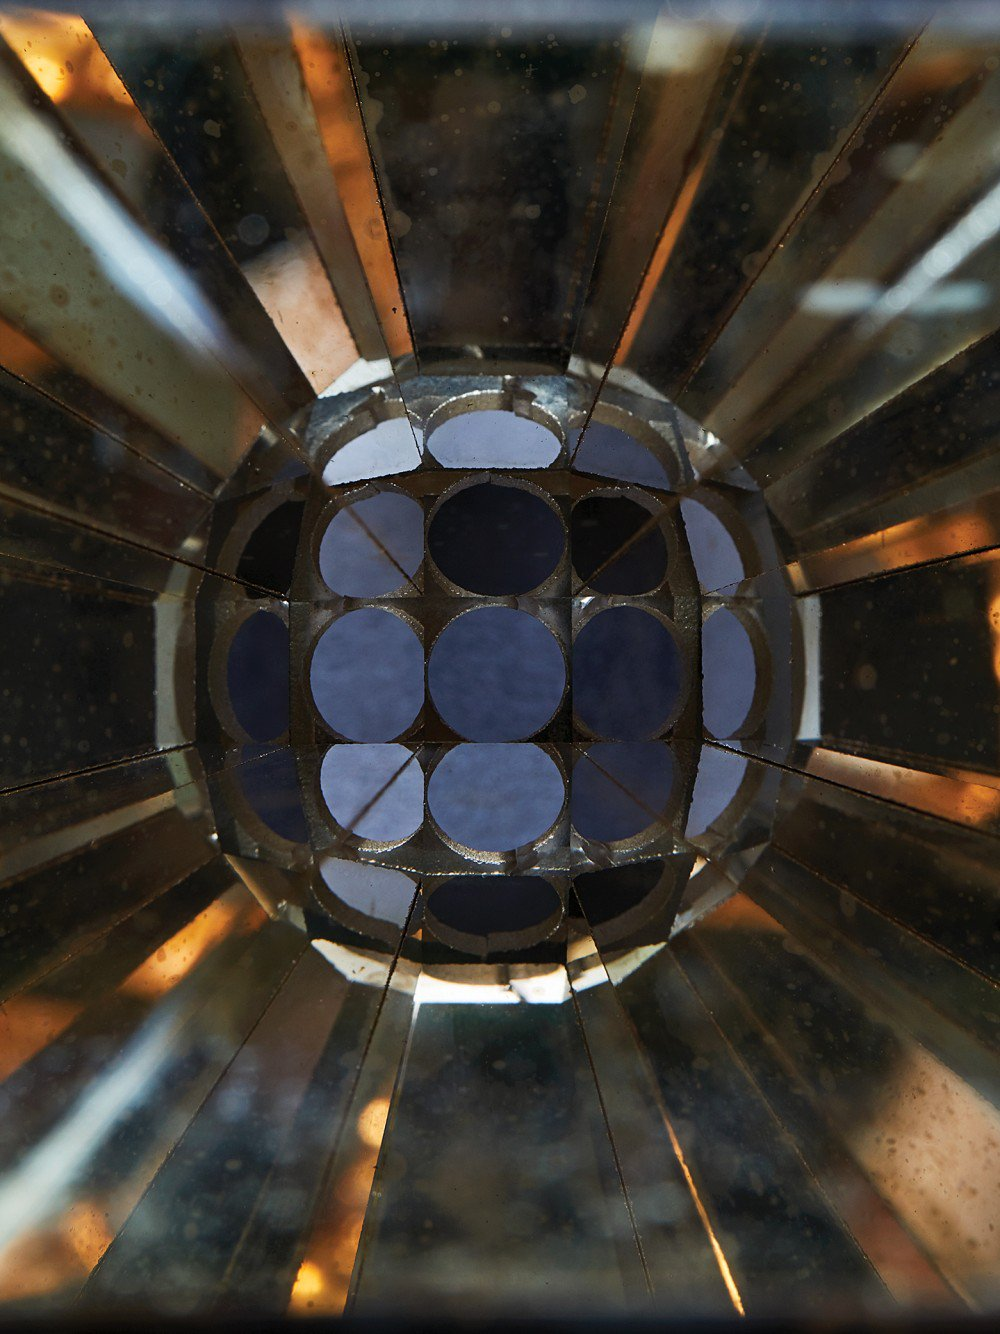 By converting heat to focused beams of light, a new solar device could create cheap and continuous power.